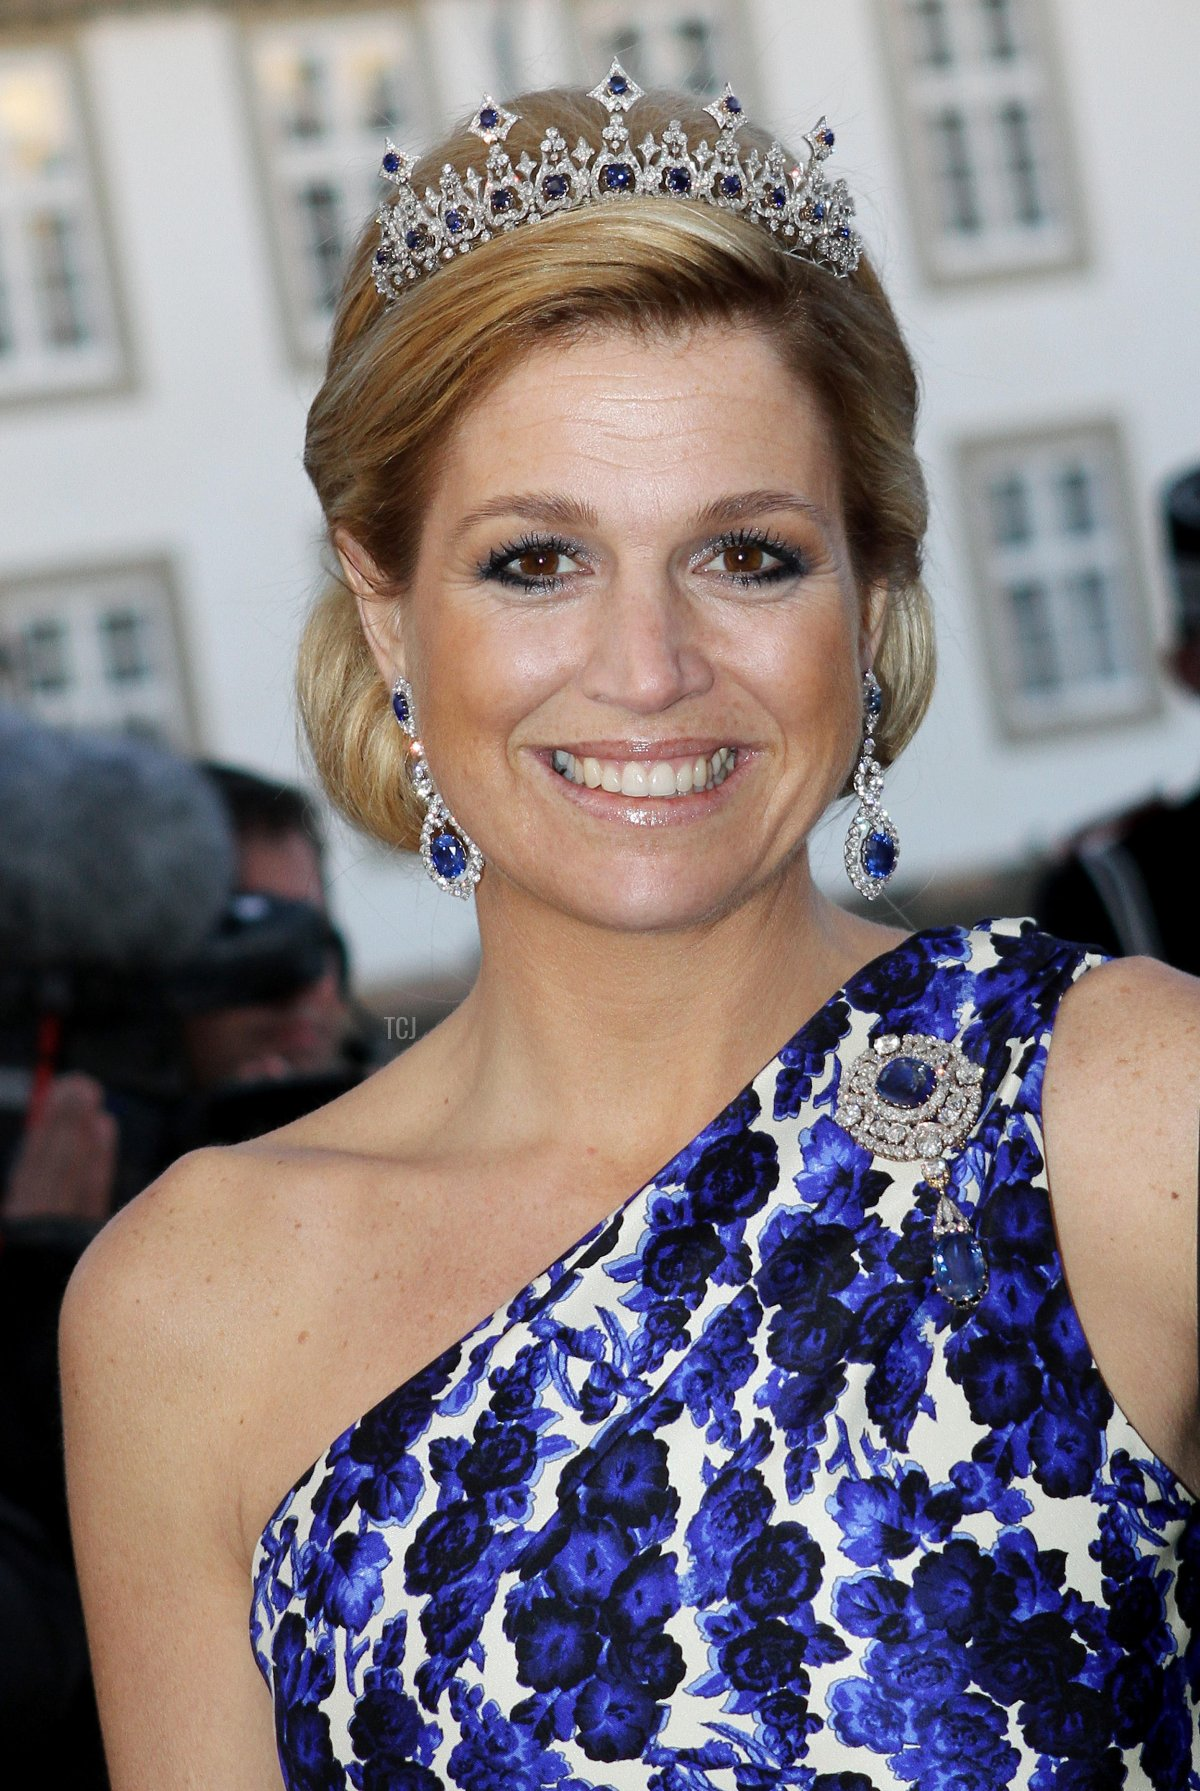 Princess Maxima of the Netherlands attends the gala dinner on the occasion of the celebration of the 70th birthday of Danish Queen Margrethe, Fredensborg Palace, Denmark, 16 April 2010